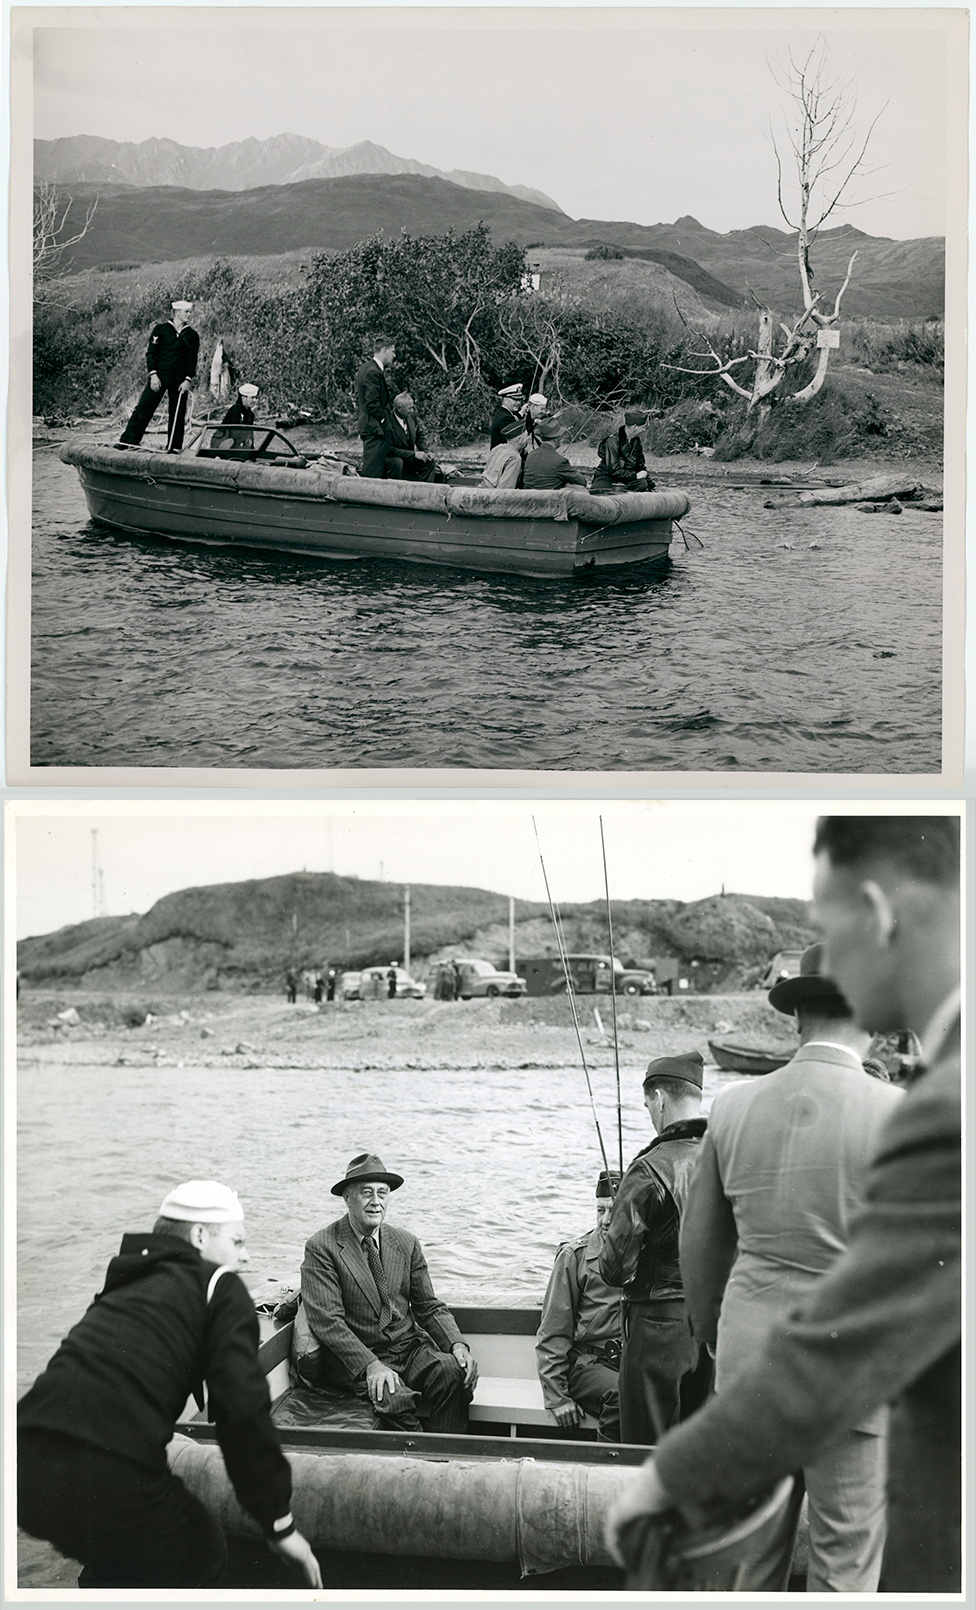 two images of President Franklin D. Roosevelt in Alaska in 1944